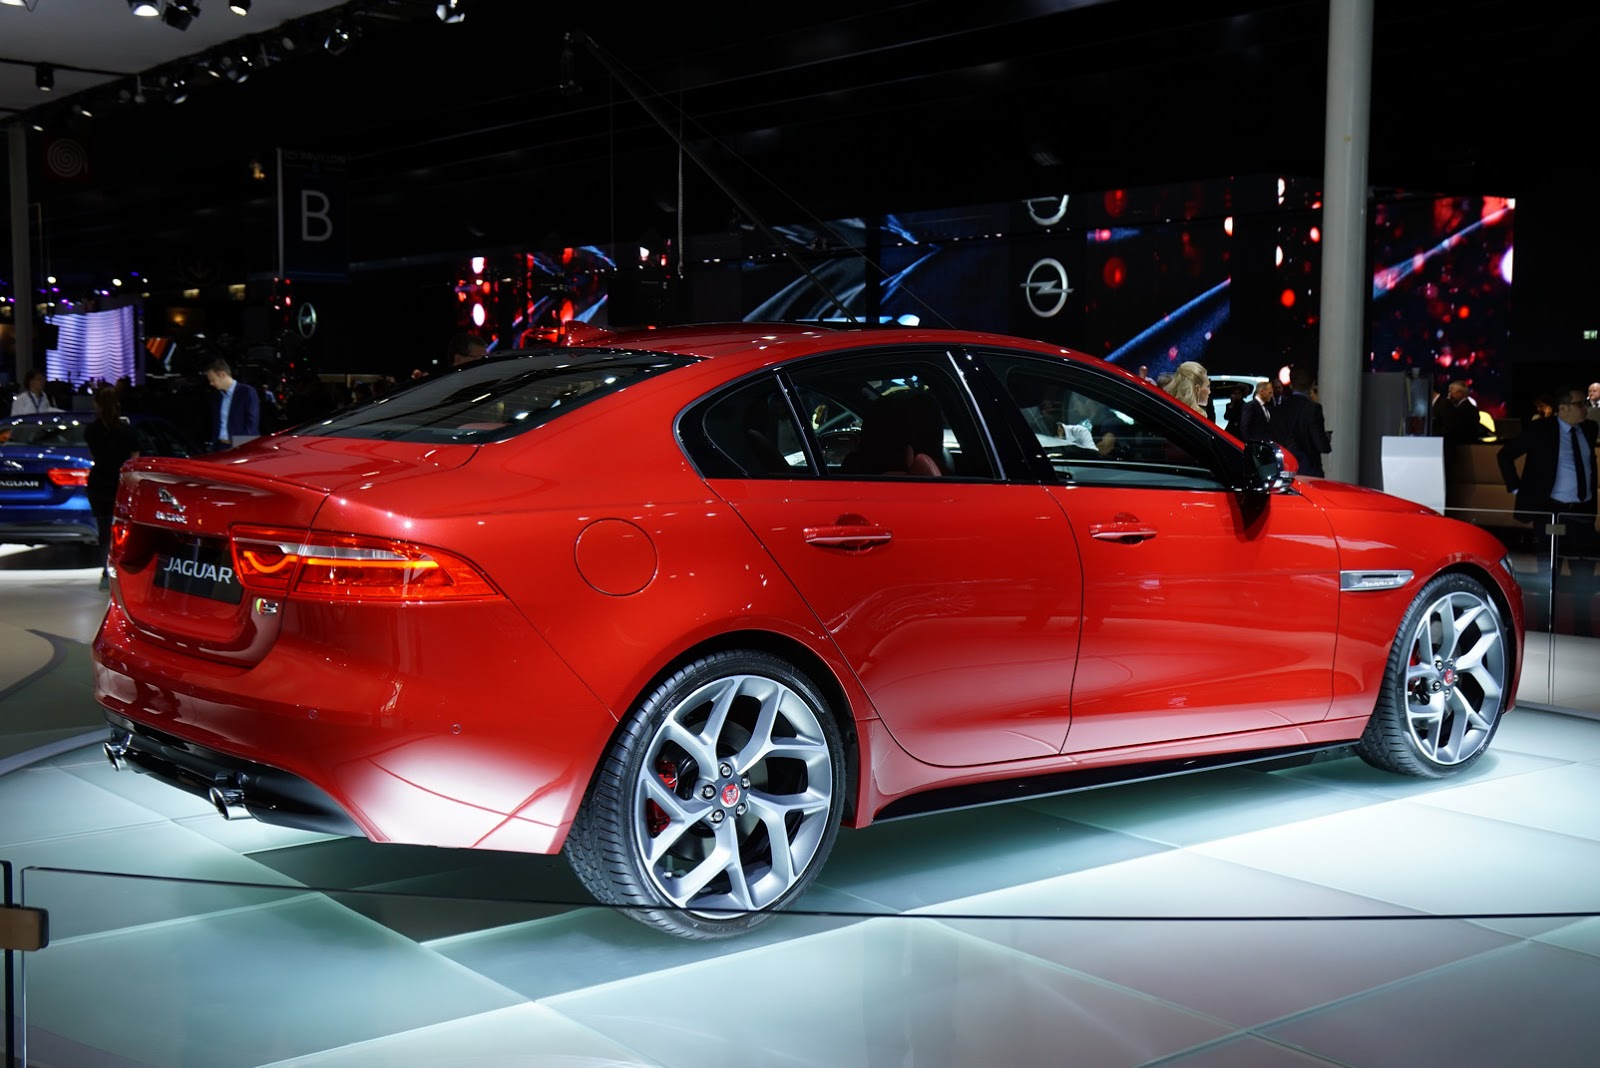 Infiniti Suv 2017 >> 2017 Jaguar XE Priced From $34,900*, New 2016 XF From ...